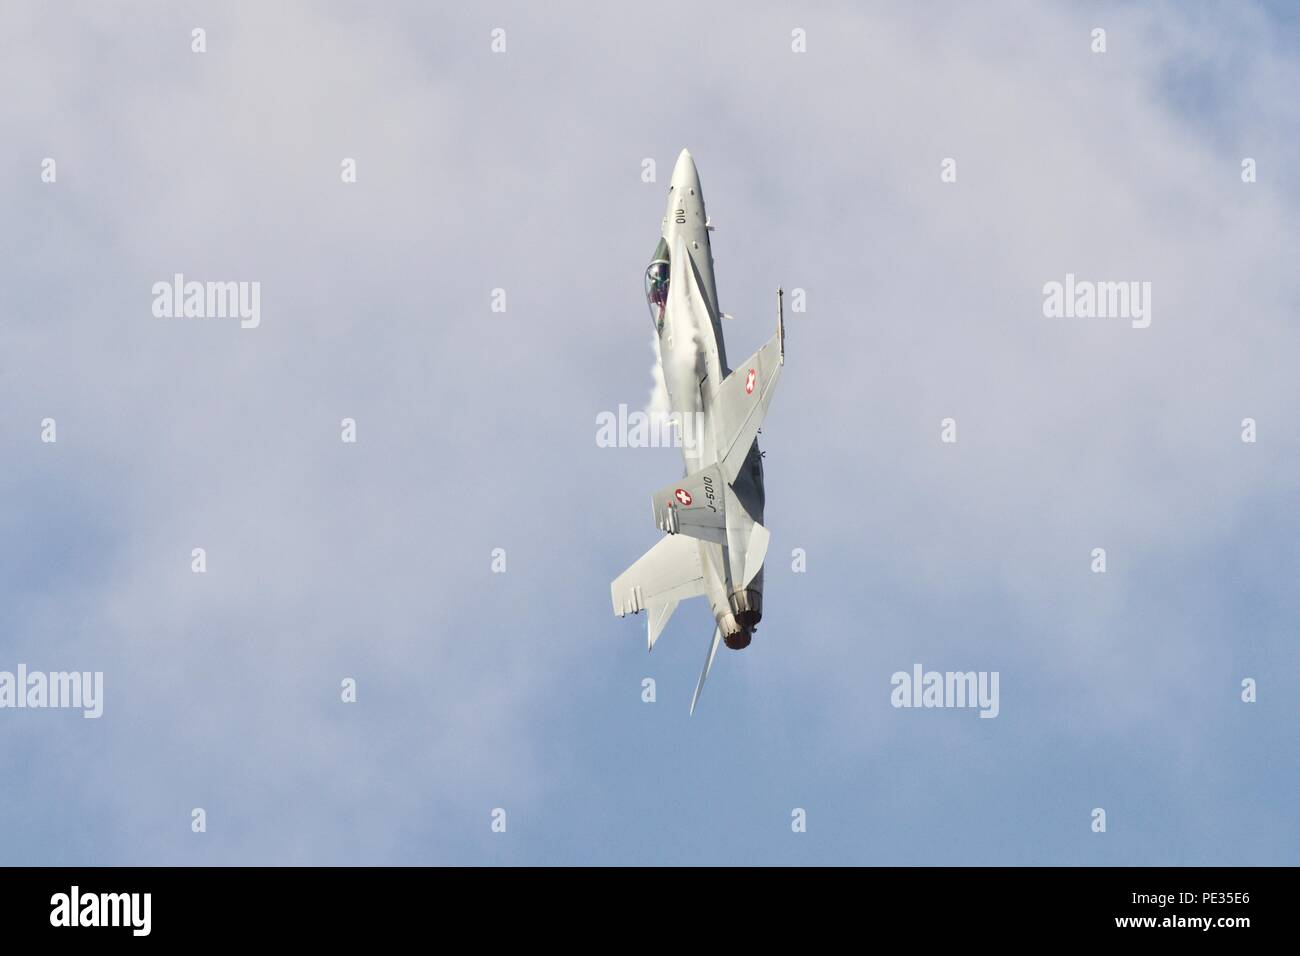 Swiss Air Force - F/A-18C Hornet demonstrates it's power and agility at the 2018 Royal International Air Tattoo - Stock Image